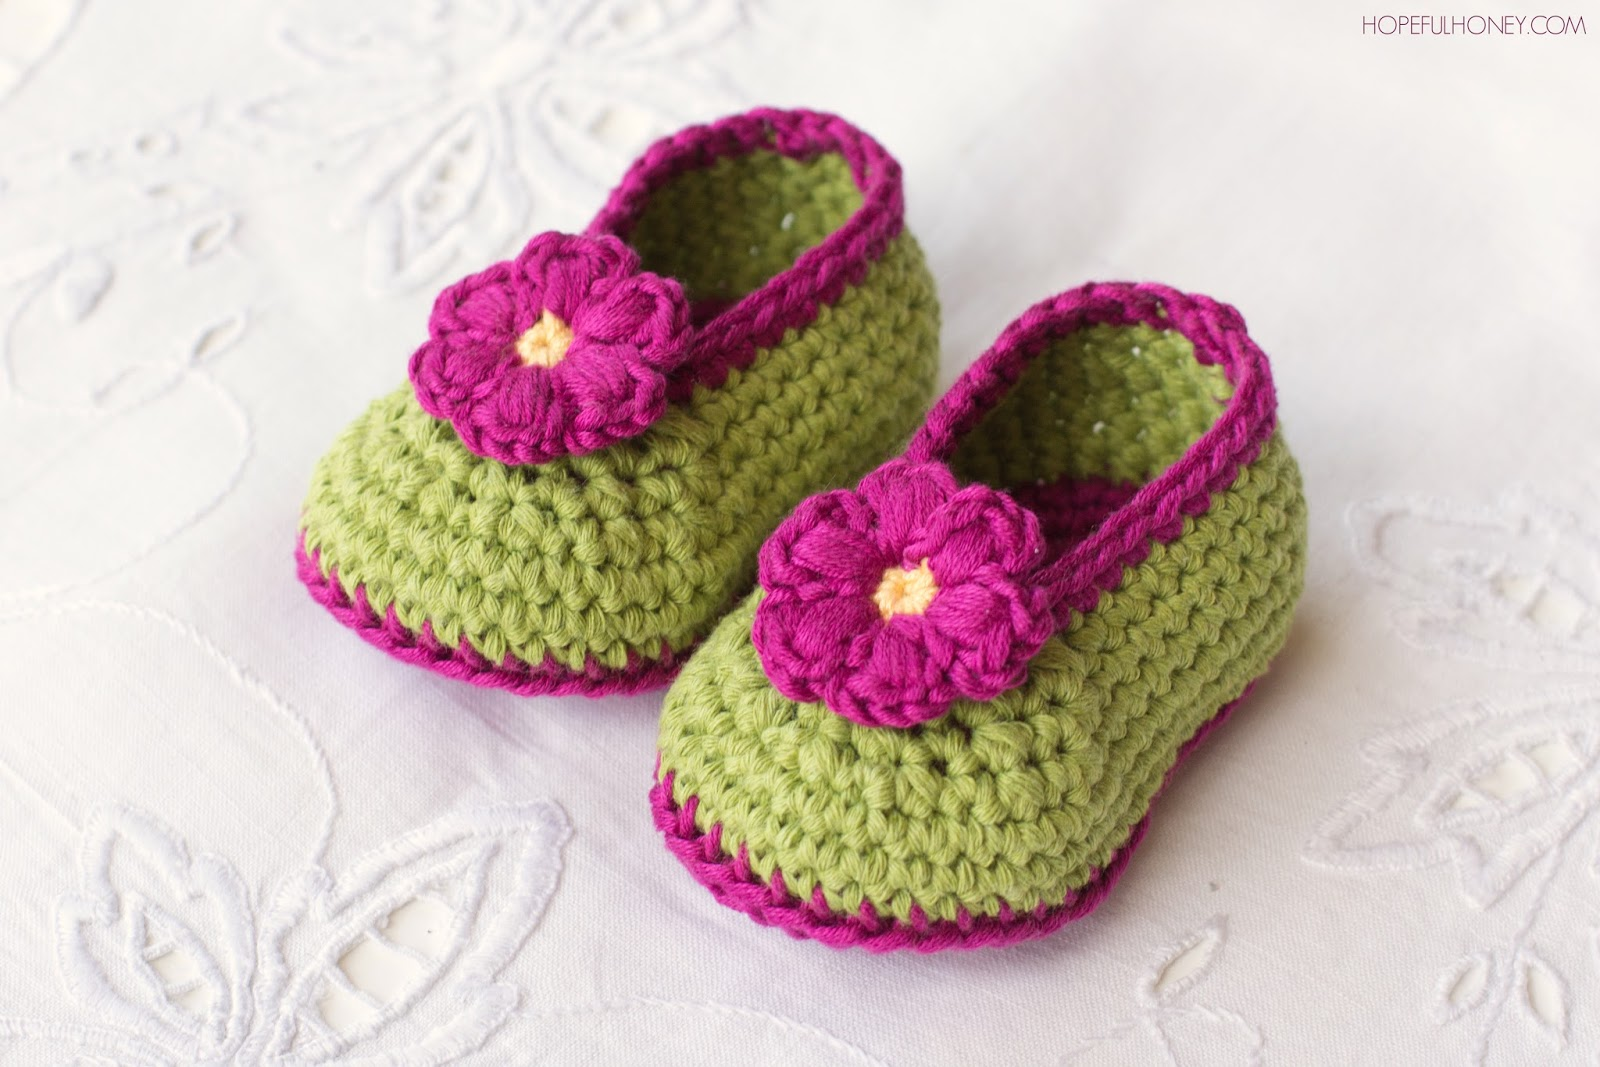 Crochet Baby Hat Booties Patterns Free : Hopeful Honey Craft, Crochet, Create: Fairy Blossom Baby ...